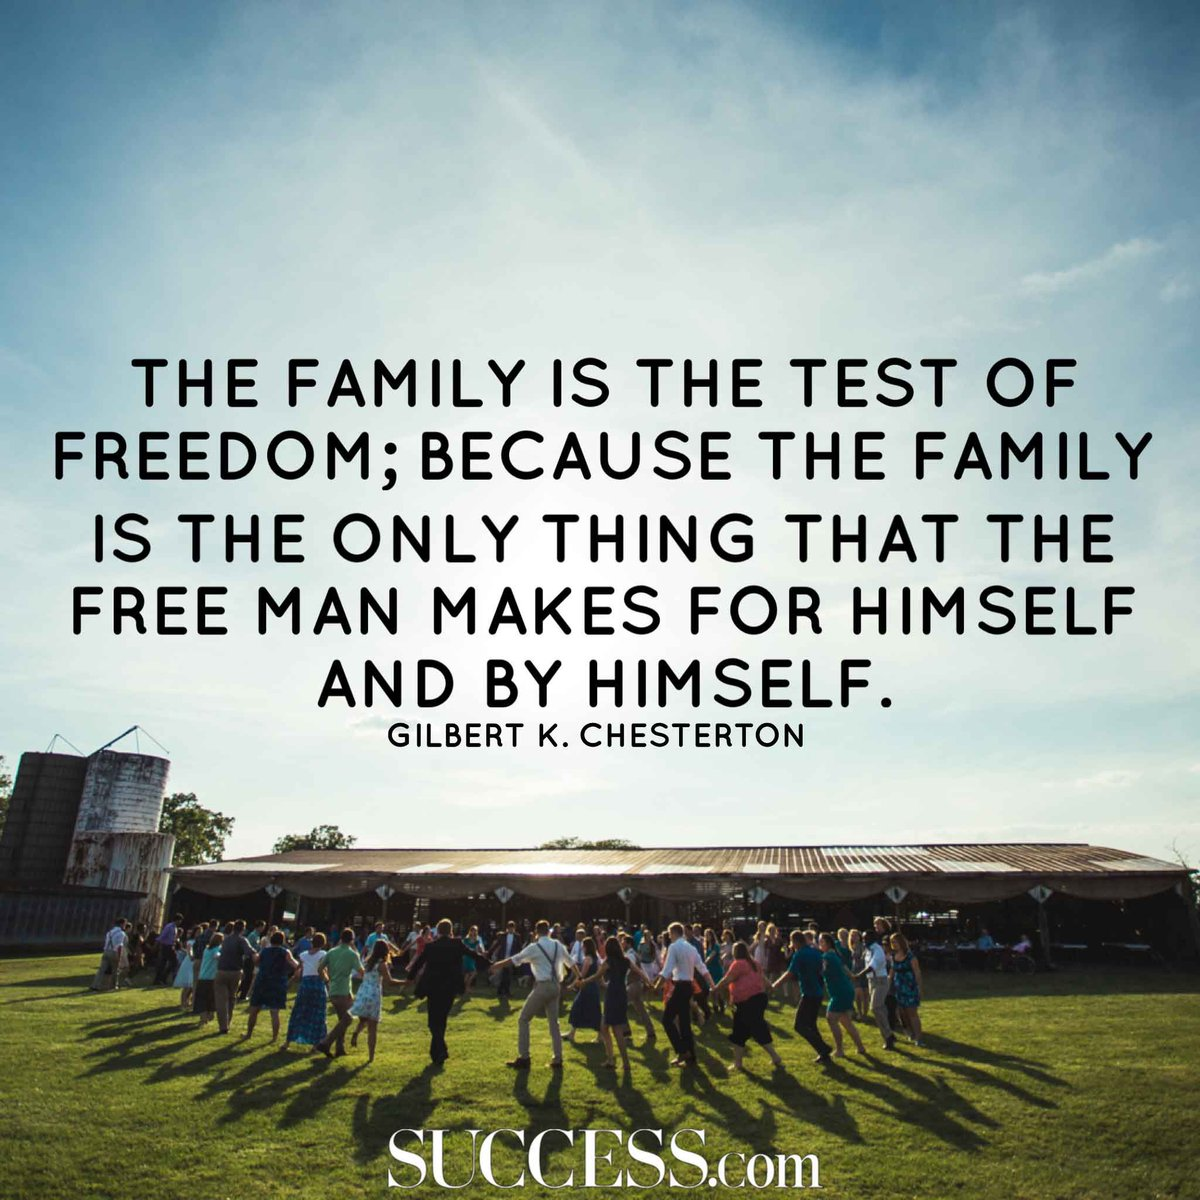 Call it a clan, call it a network, call it a tribe, call it a family: Whatever you call it, whoever it is, family is important.  Take a look at these #quotes all about family.  https://t.co/CHnVbDW0iY via @successmagazine #happiness #gratitude https://t.co/KpHgXeEi4F